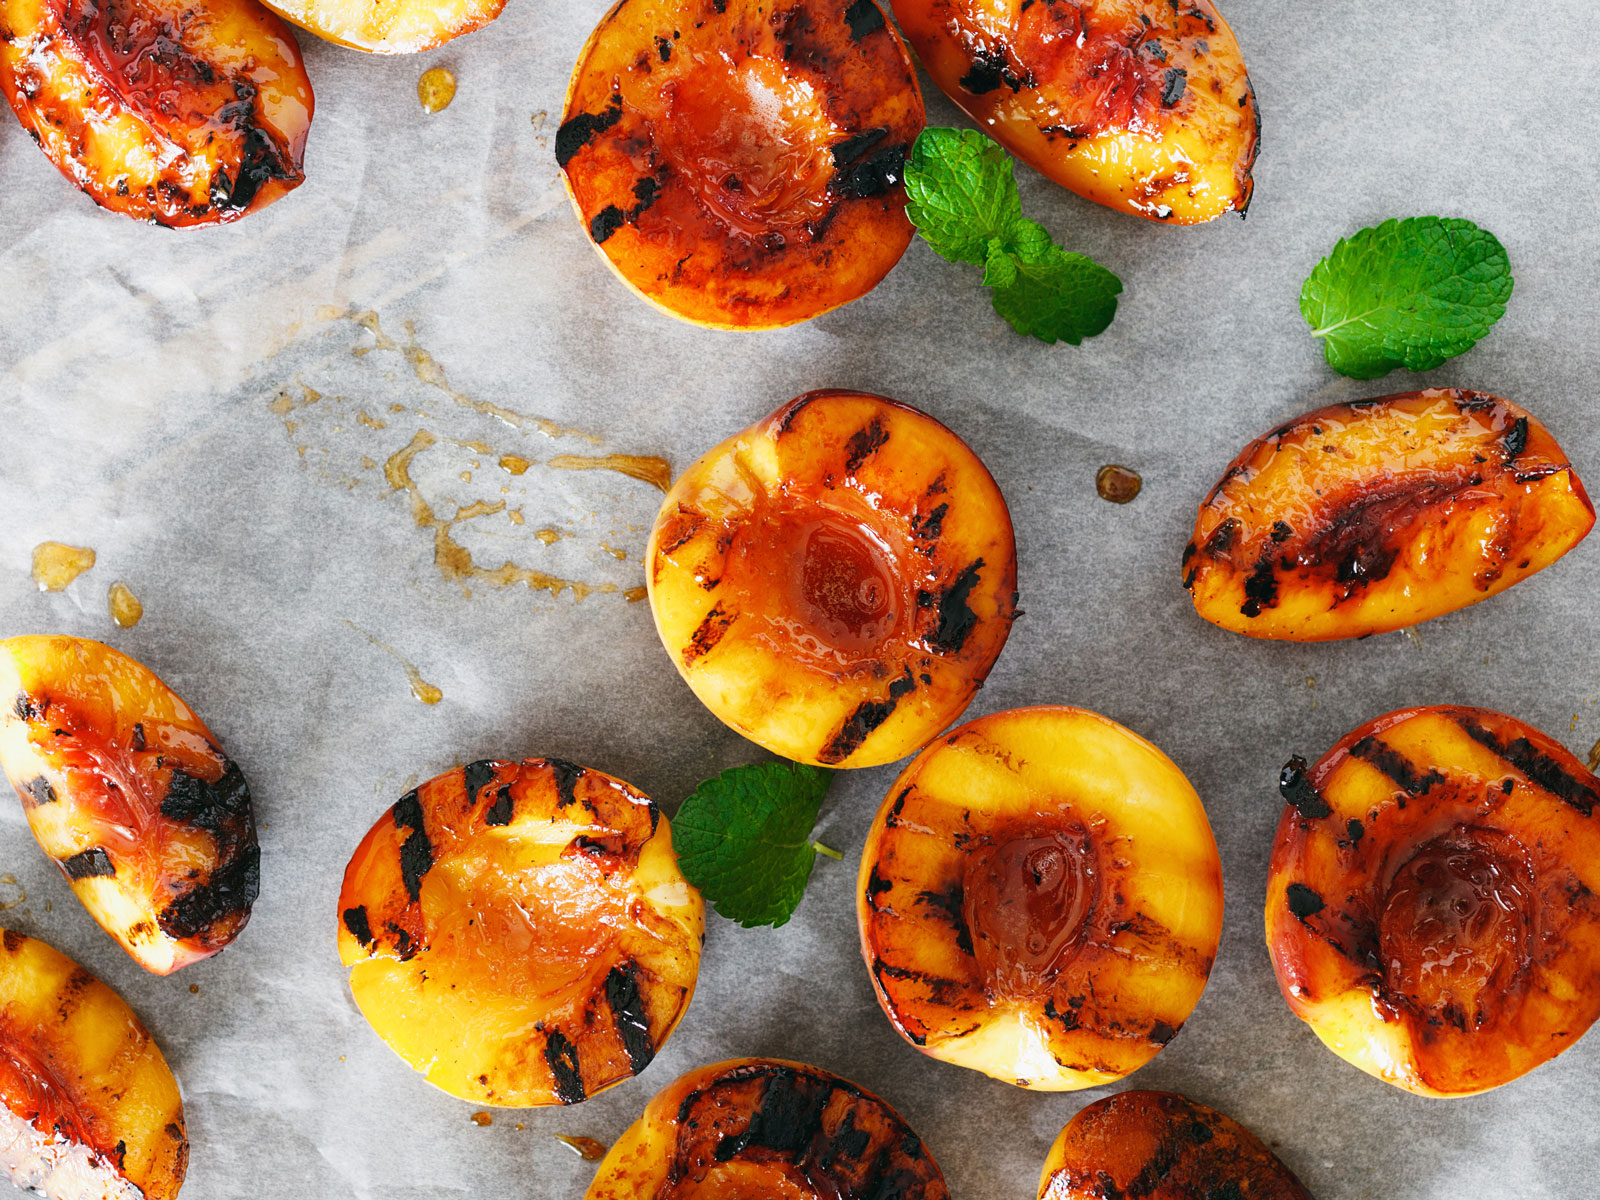 The One Mistake You Need to Avoid When You're Grilling Fruit